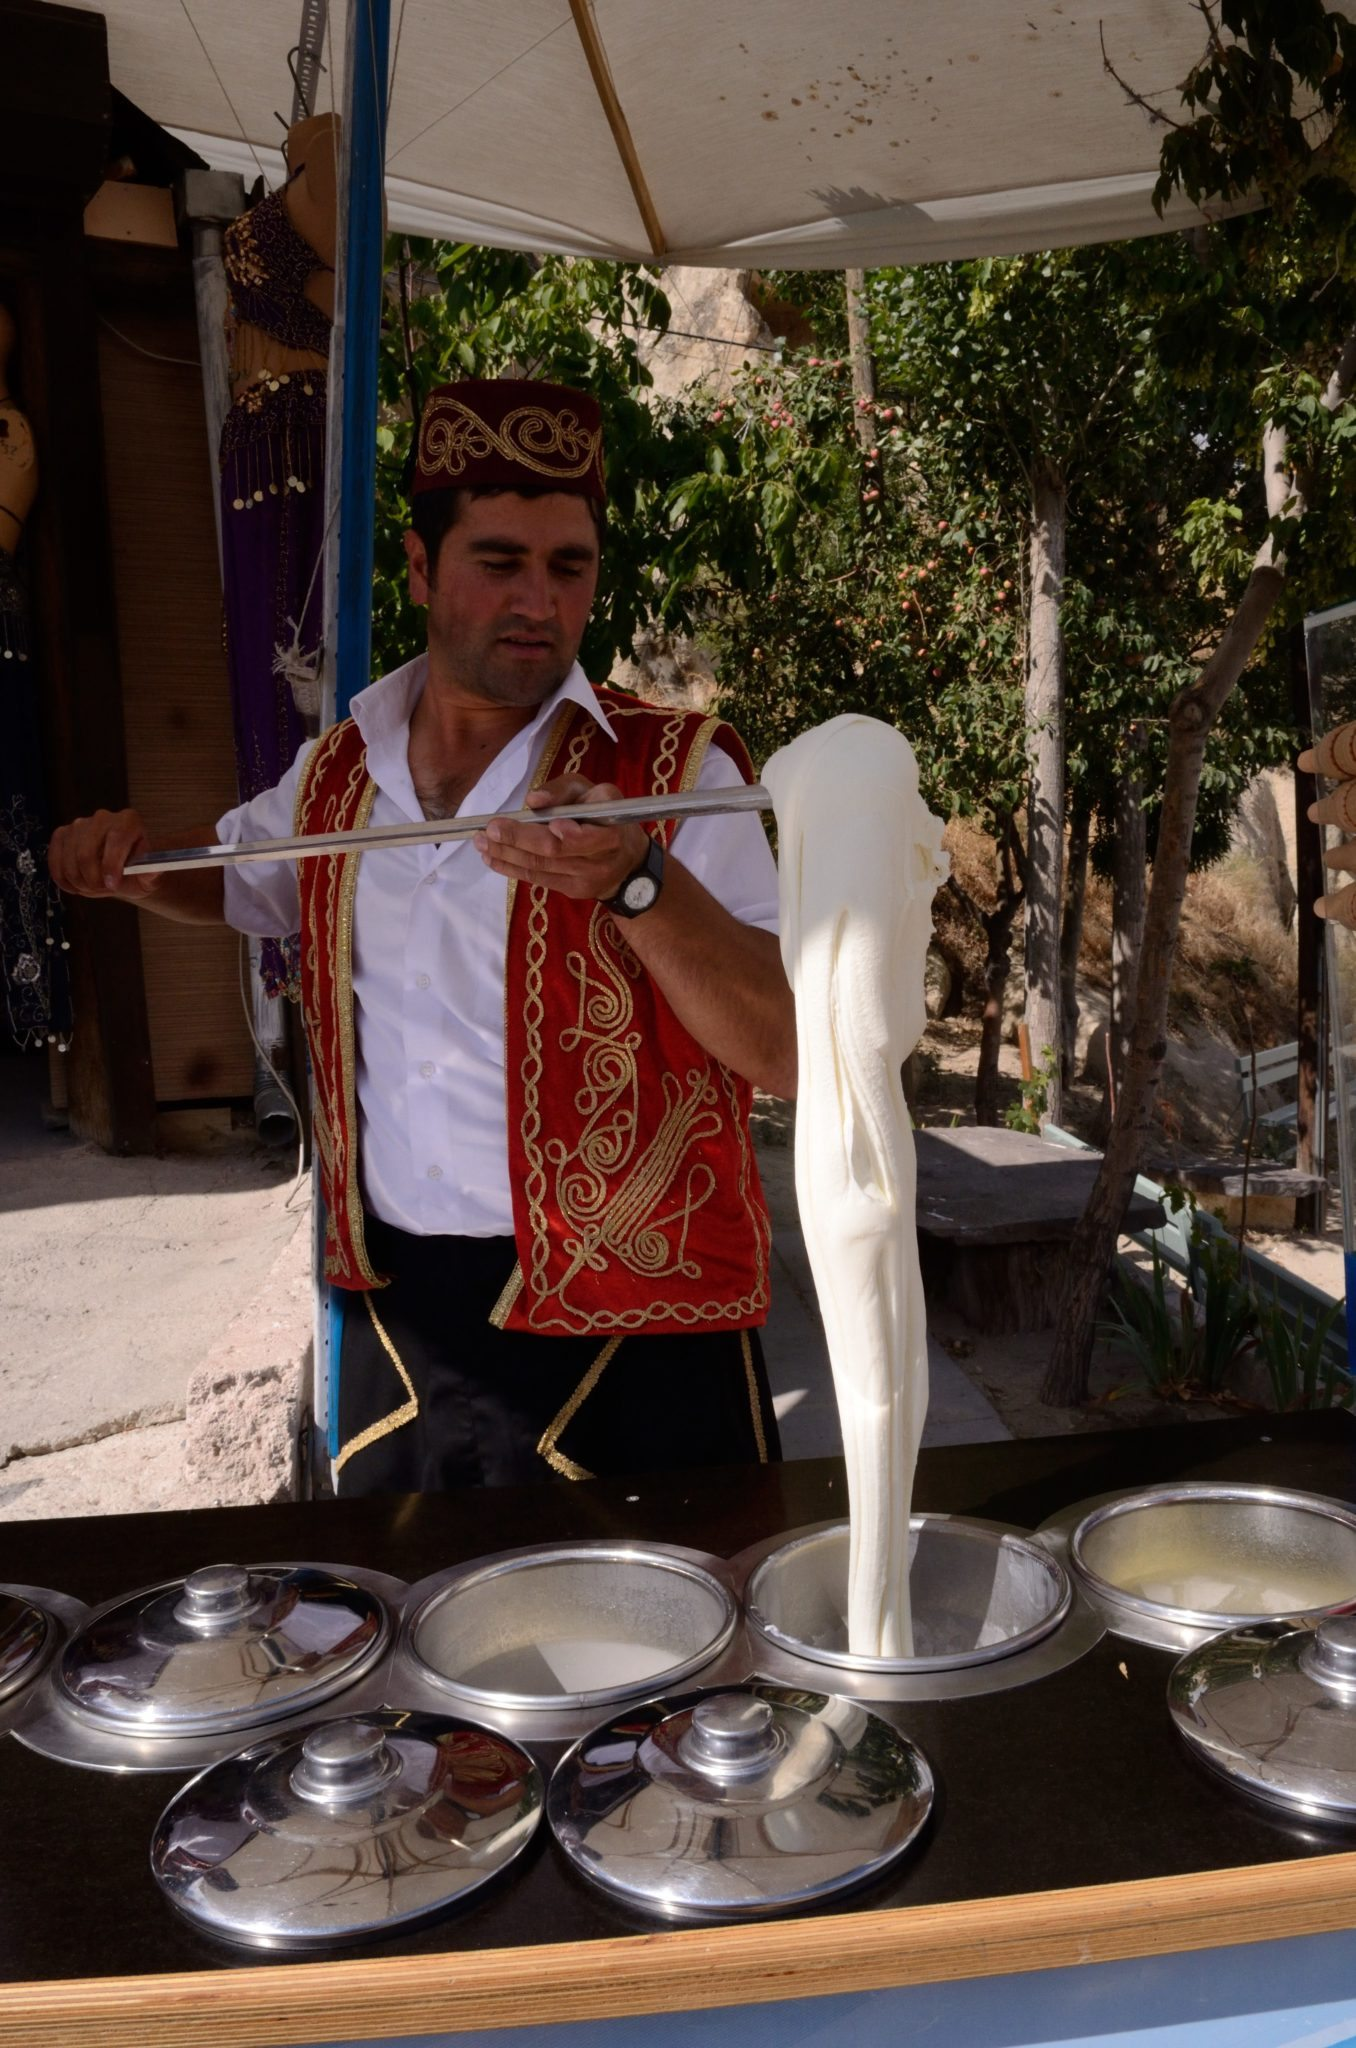 turkish ice cream market The turkish ice cream vendor in turkey, there are many opportunities to introduce your palette to new and exciting tastes the cuisine is widely praised around the world for its diversity and one culinary item to try is traditional turkish ice cream.